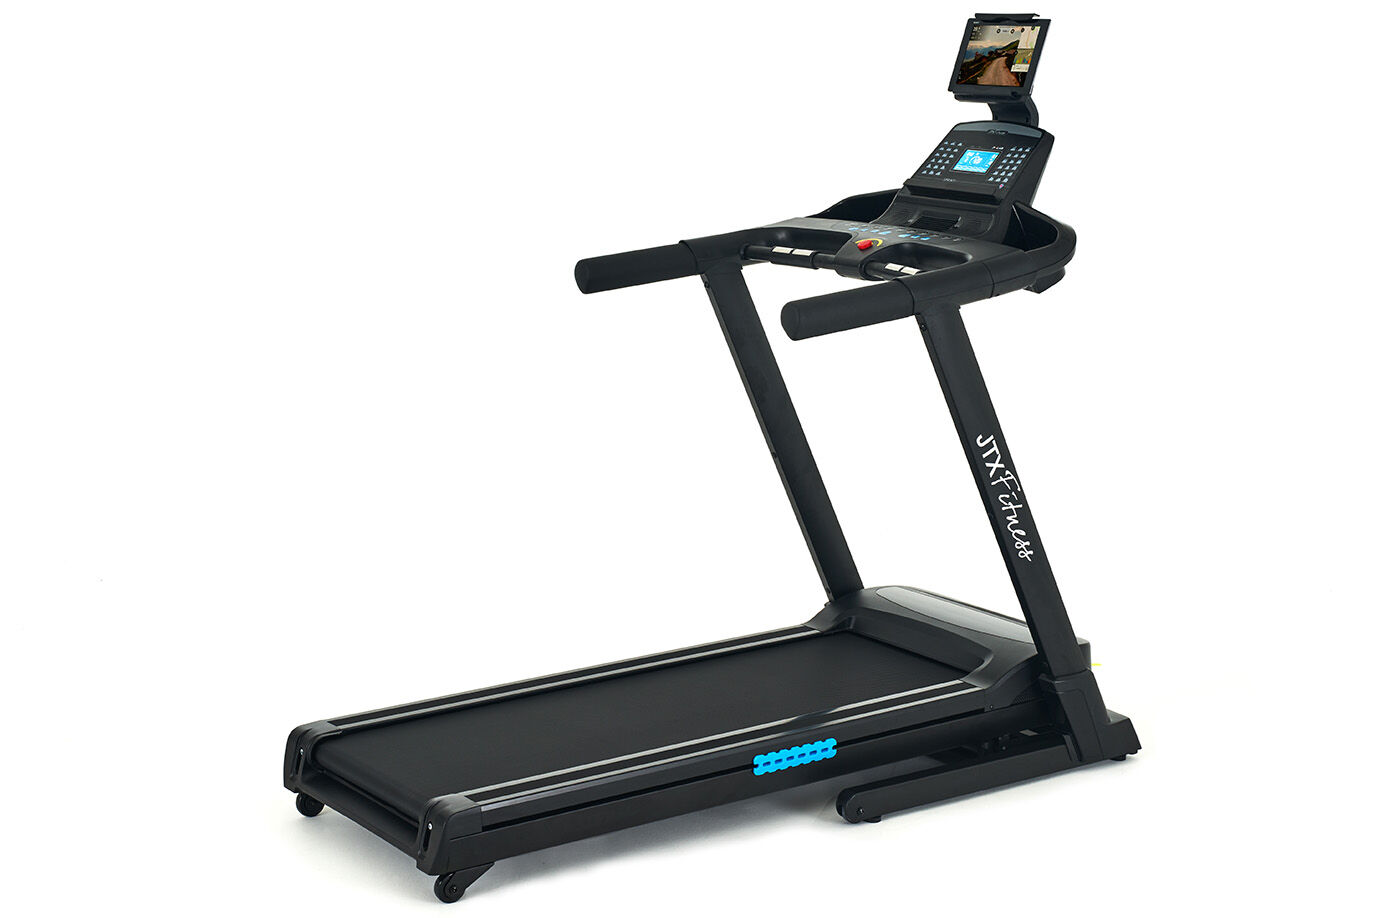 Foldable Treadmill For Home Fitness